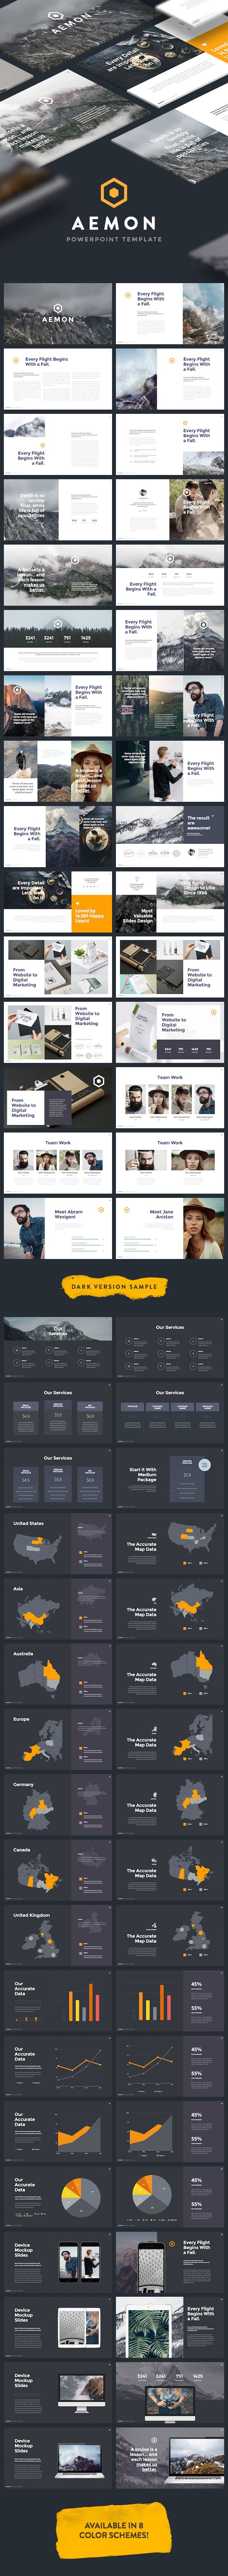 Minimal & Creative Powerpoint Template (Aemon)